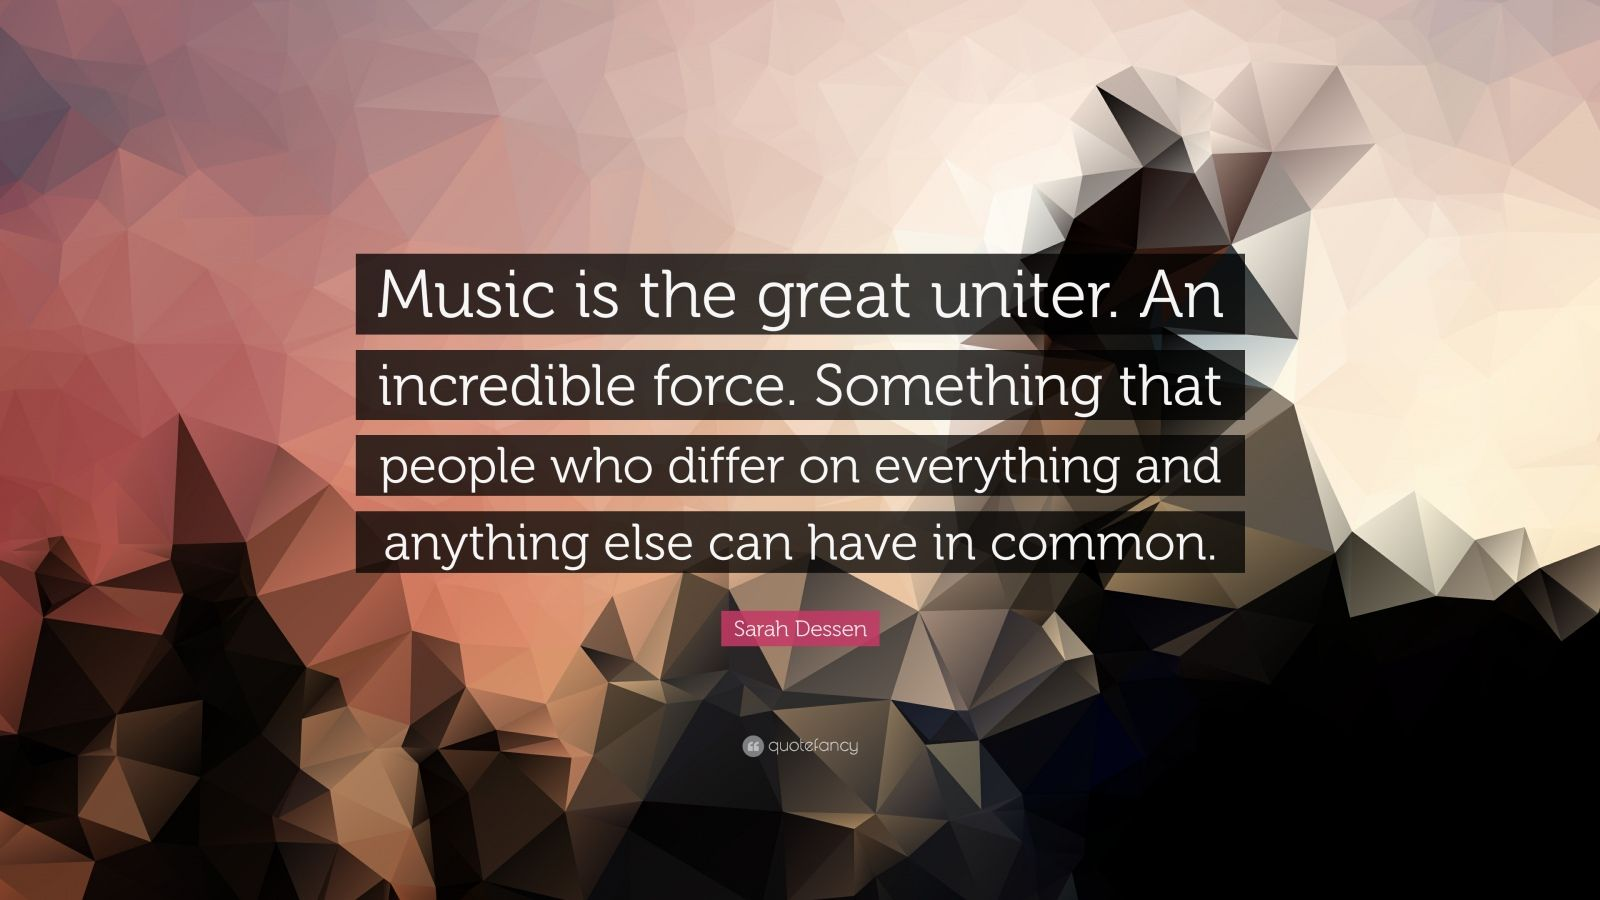 """Sarah Dessen Quote: """"Music is the great uniter. An incredible force. Something that people who differ on everything and anything else can have in common."""""""